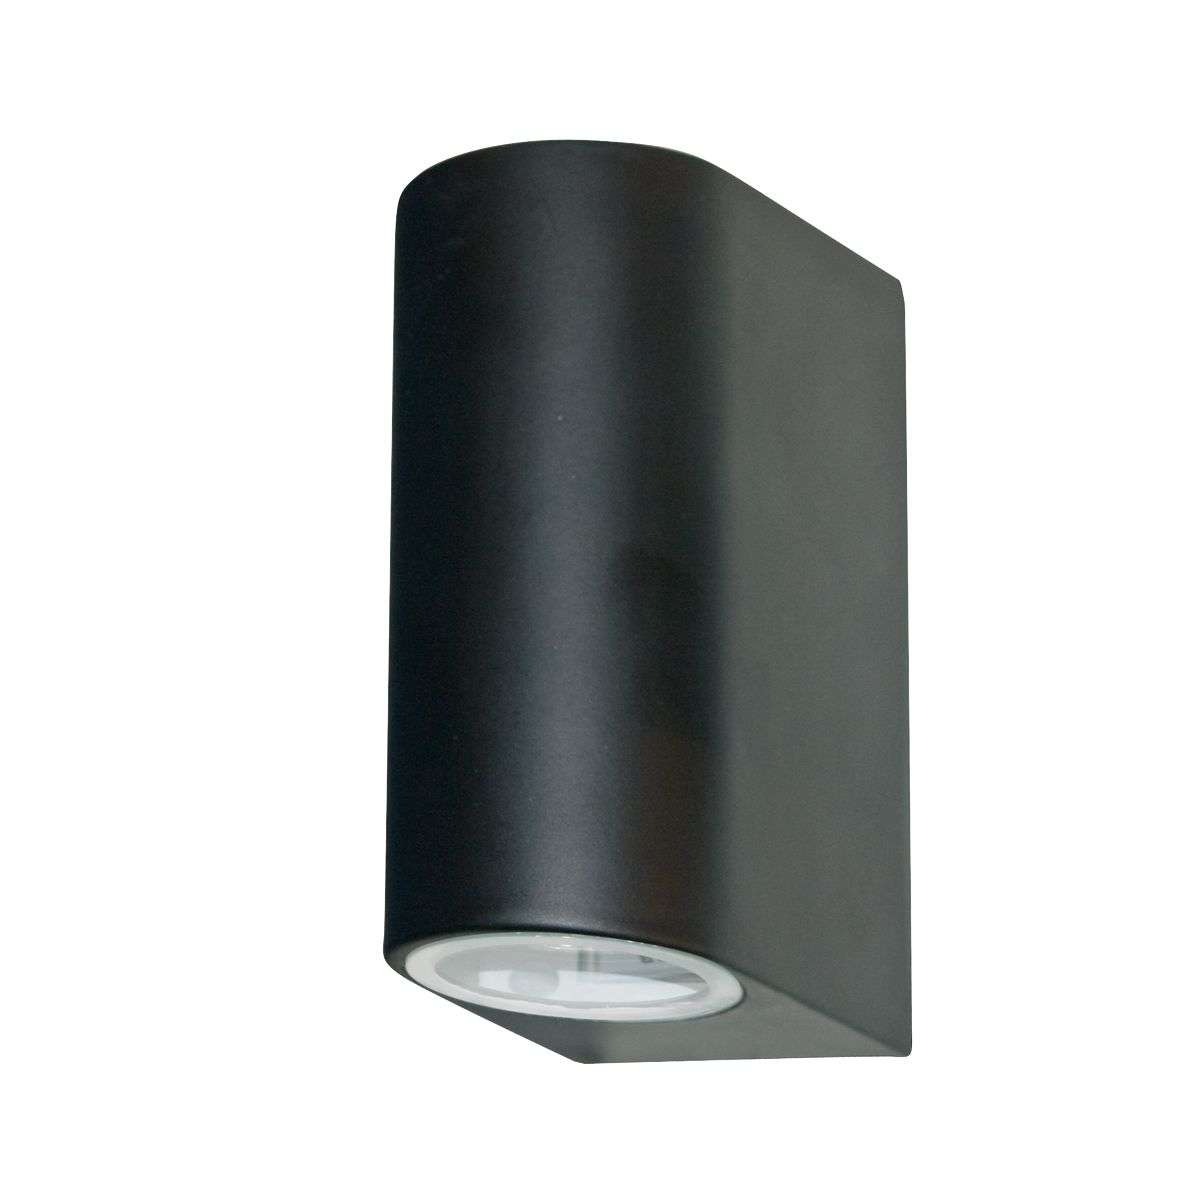 2 Light Black Outdoor Up & Down Light with Fixed Glass Lens